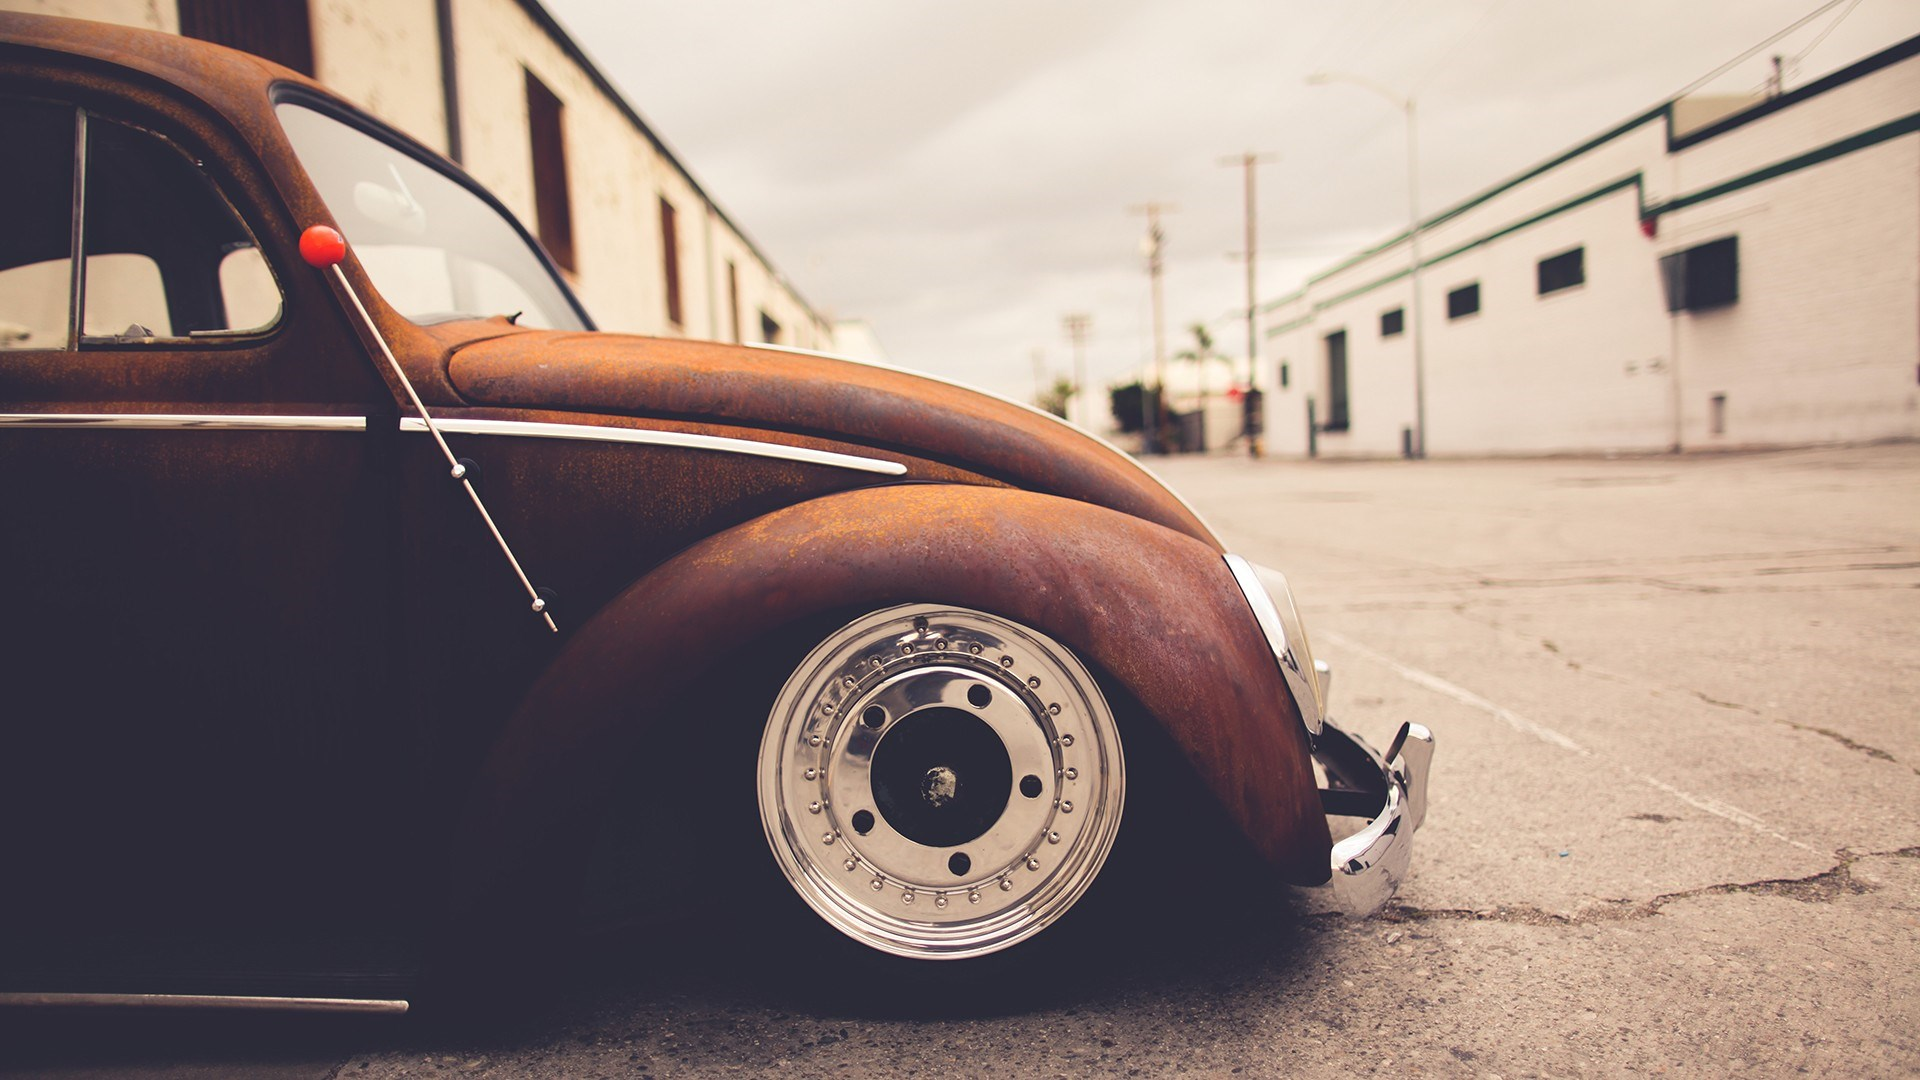 Beetle Bug wallpaper in Transportation wallpapers with all resolutions 1920x1080